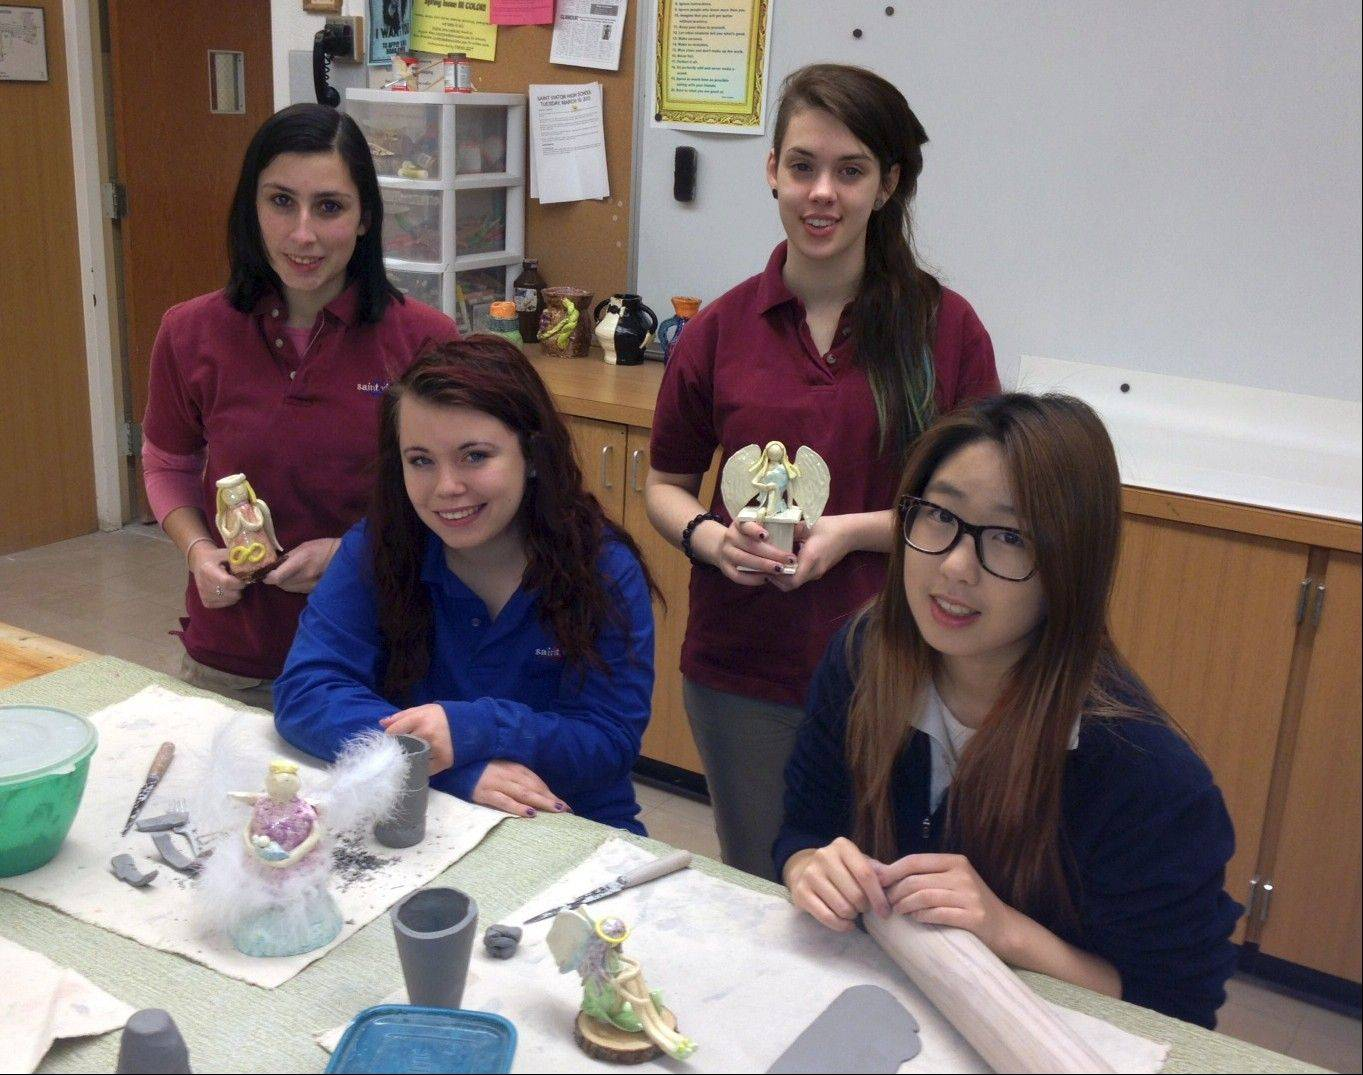 St Viator High School ceramics students share their angel figurines with the camera before sharing them with the world.